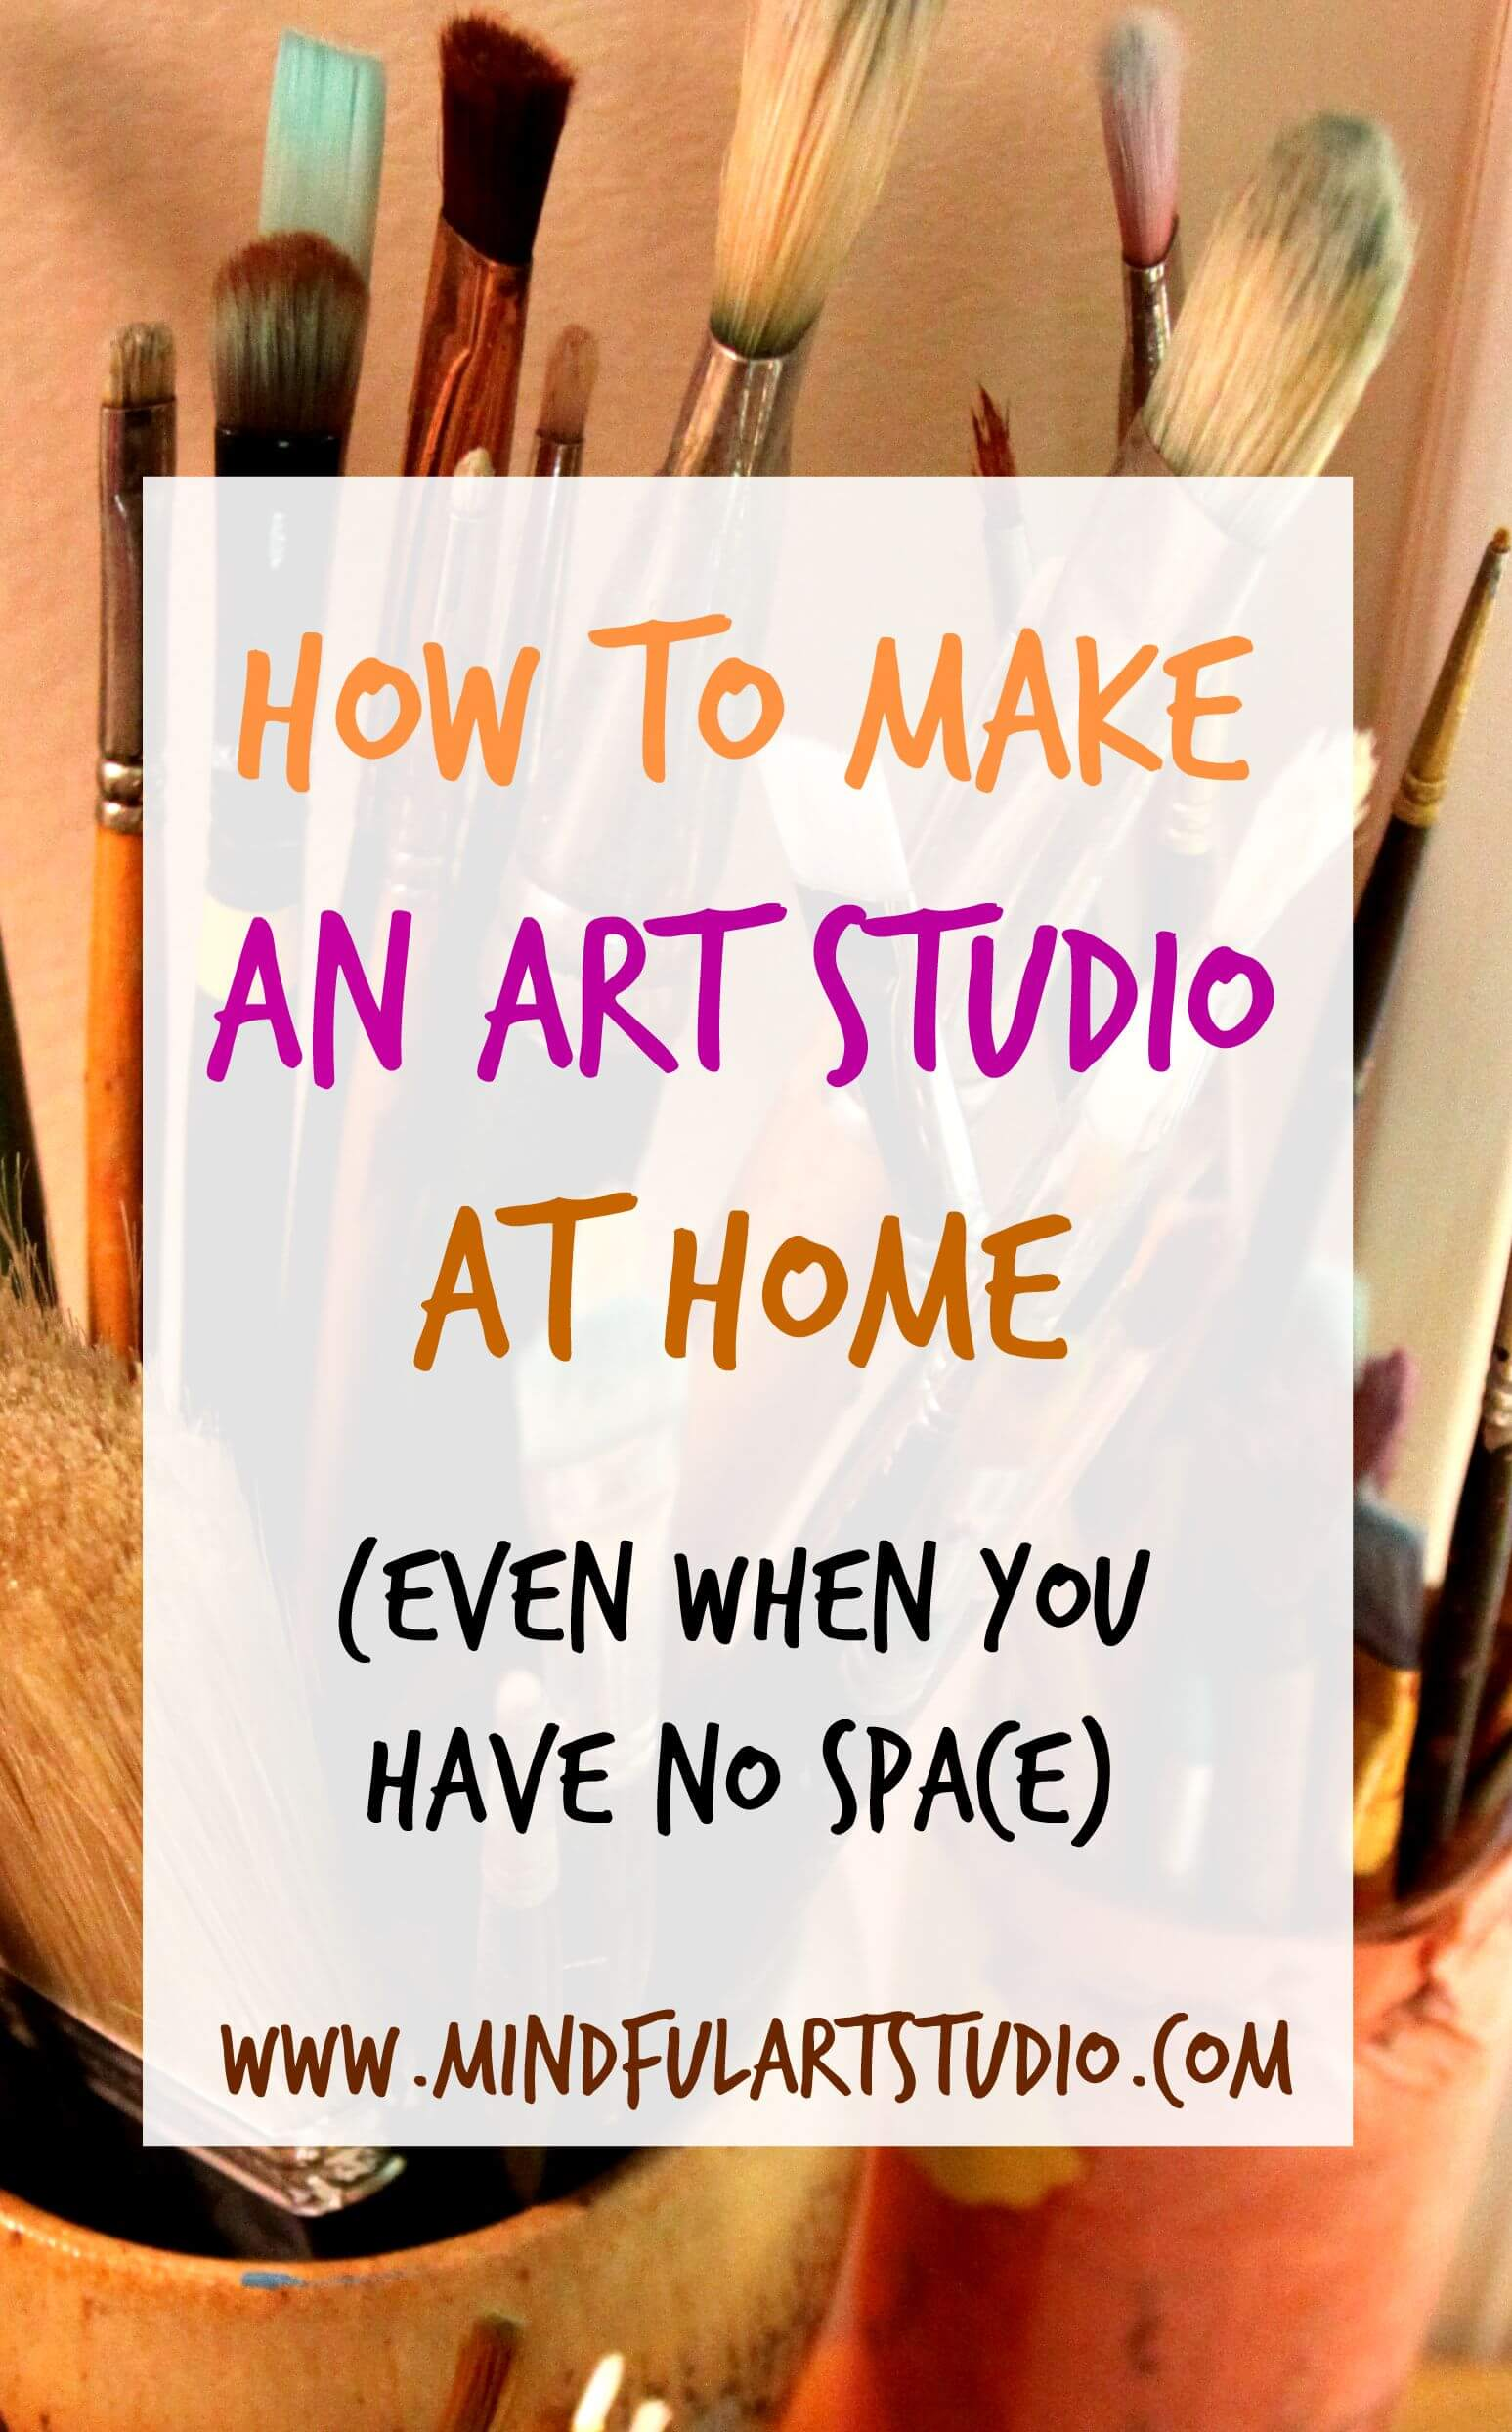 Mindful art studio art journaling and mindful creation from the heart - Creative digital art ideas for your home ...